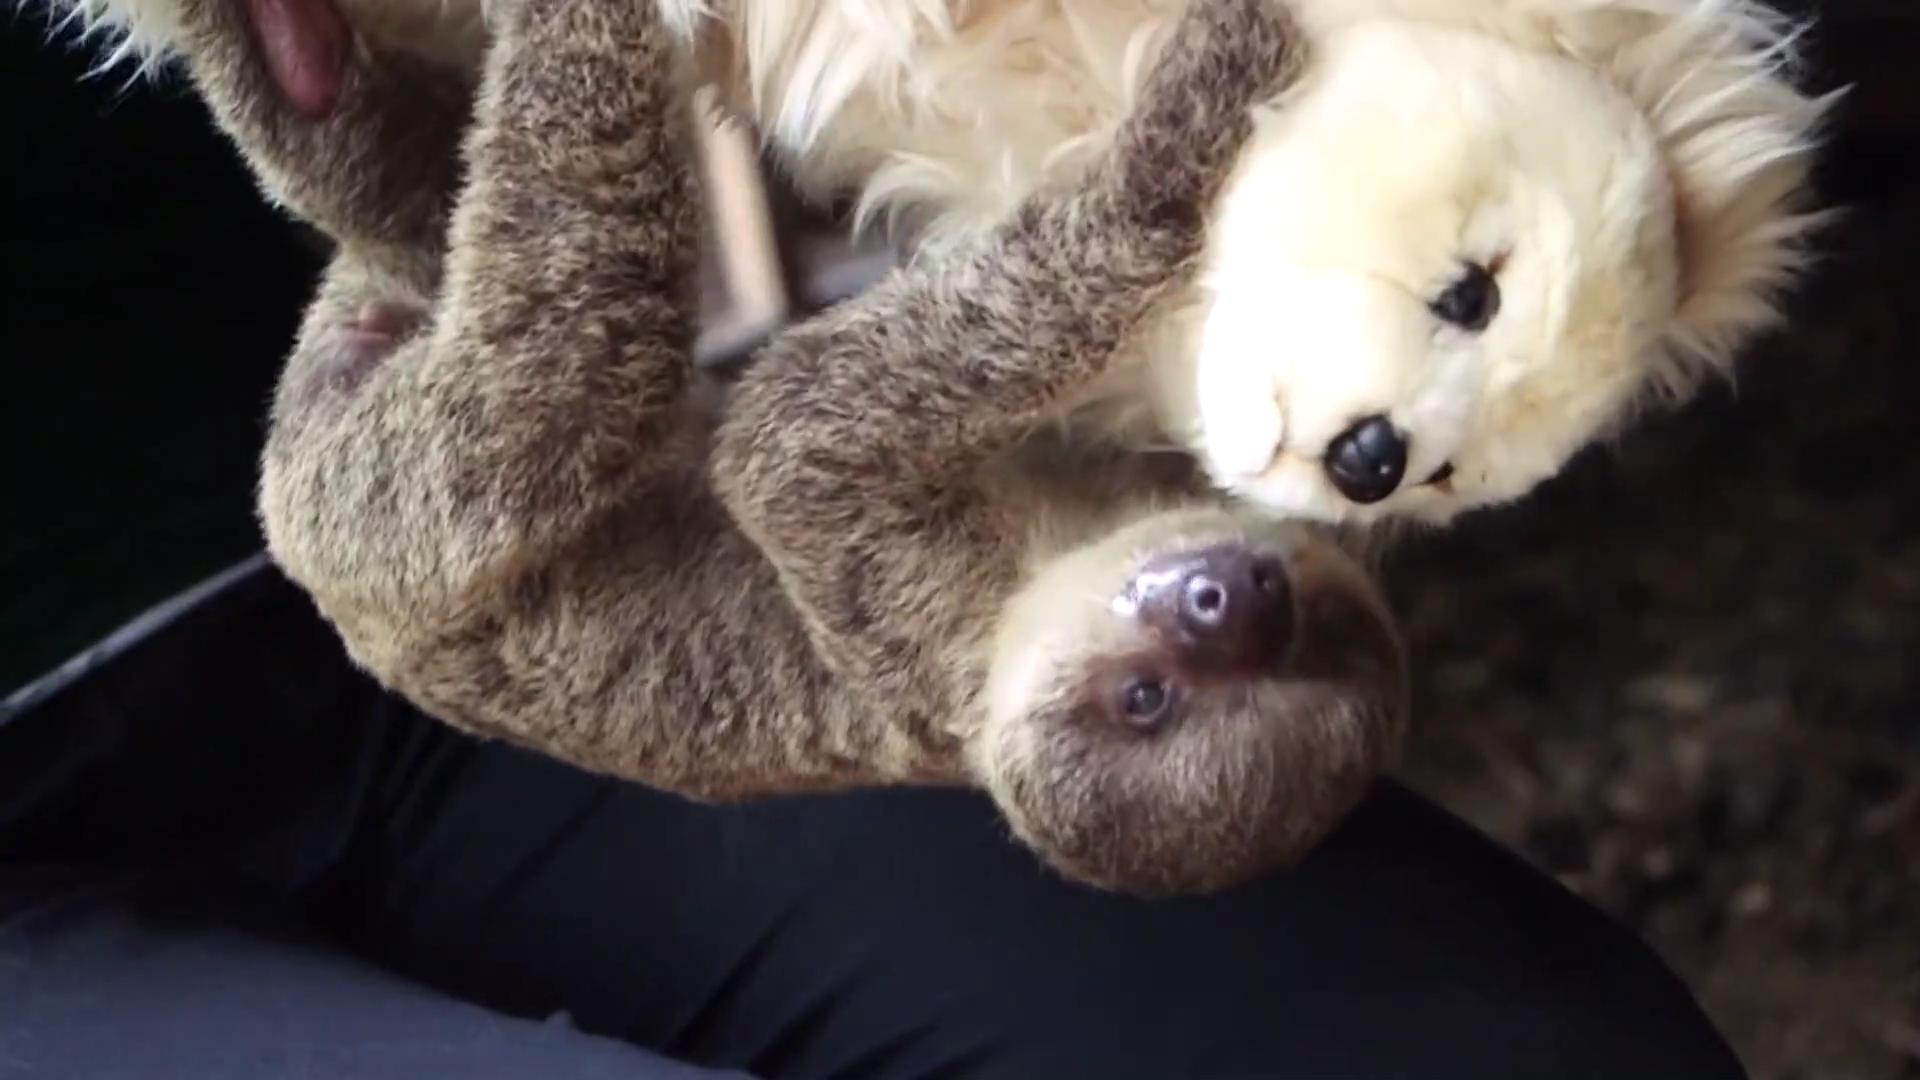 Zookeepers use stuffed animal to raise adorable baby sloth